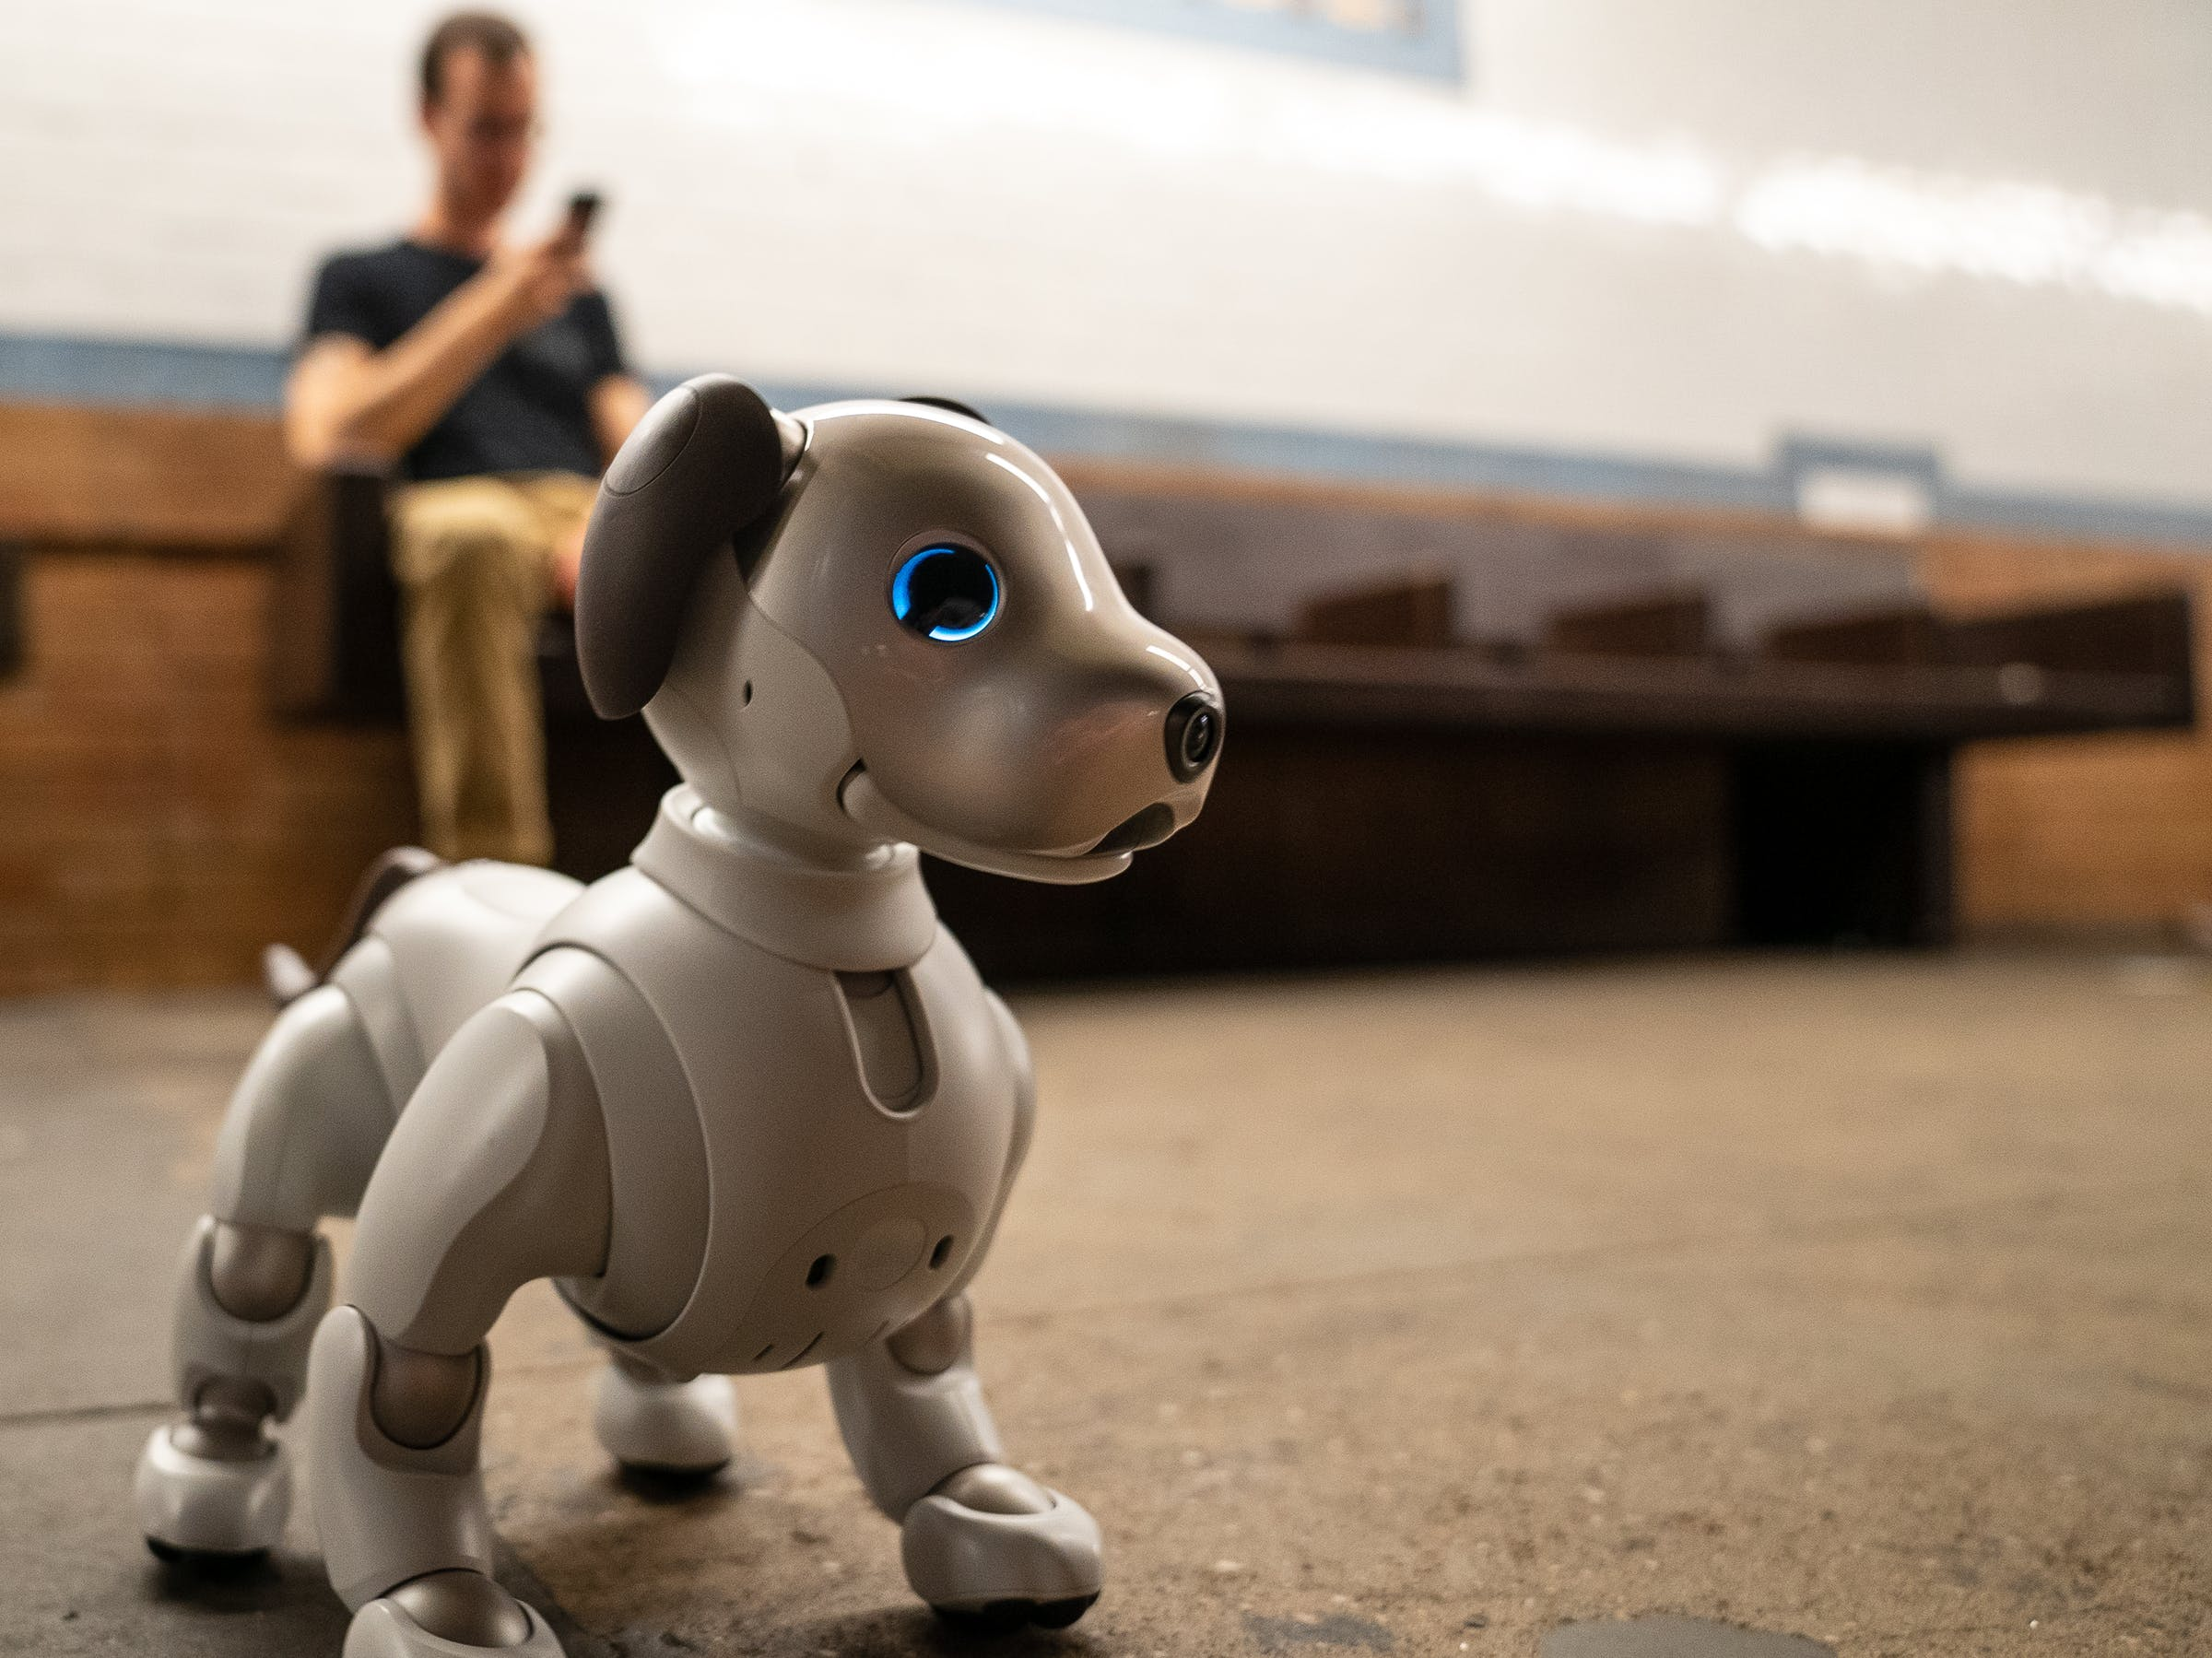 Sony Aibo: I Babysat a Robot Dog for a Week to Feel Less